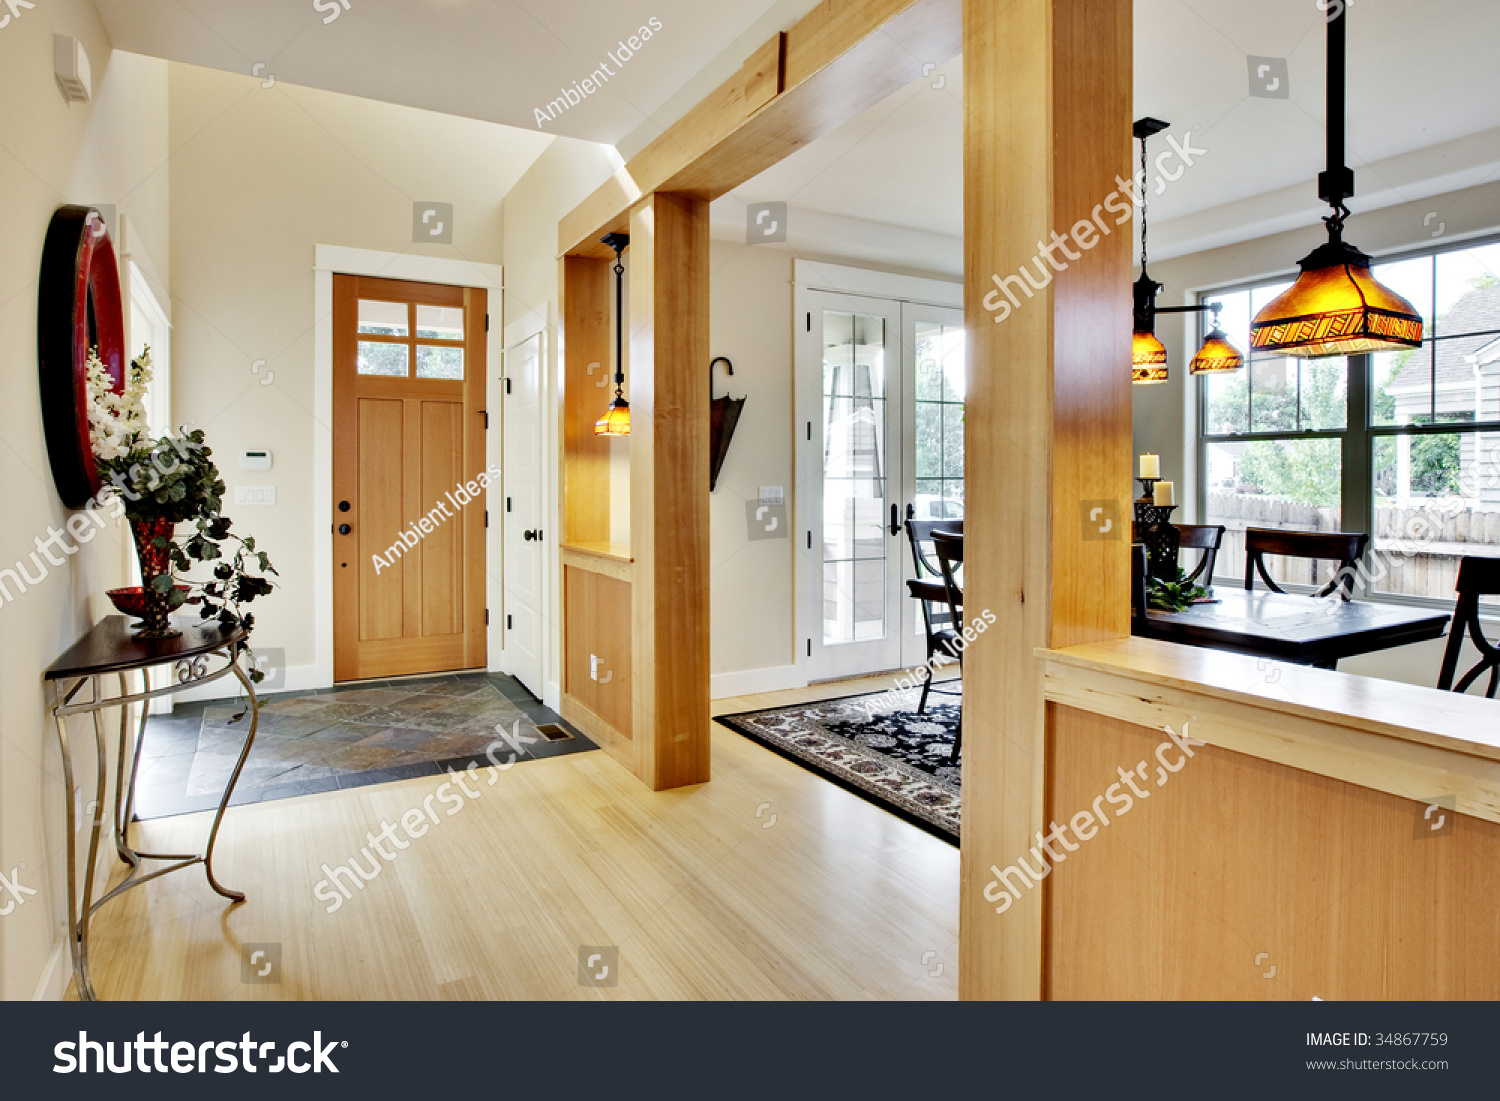 Surprising Wide View Home Entrance Hallway Dining Stock Photo 34867759 Largest Home Design Picture Inspirations Pitcheantrous